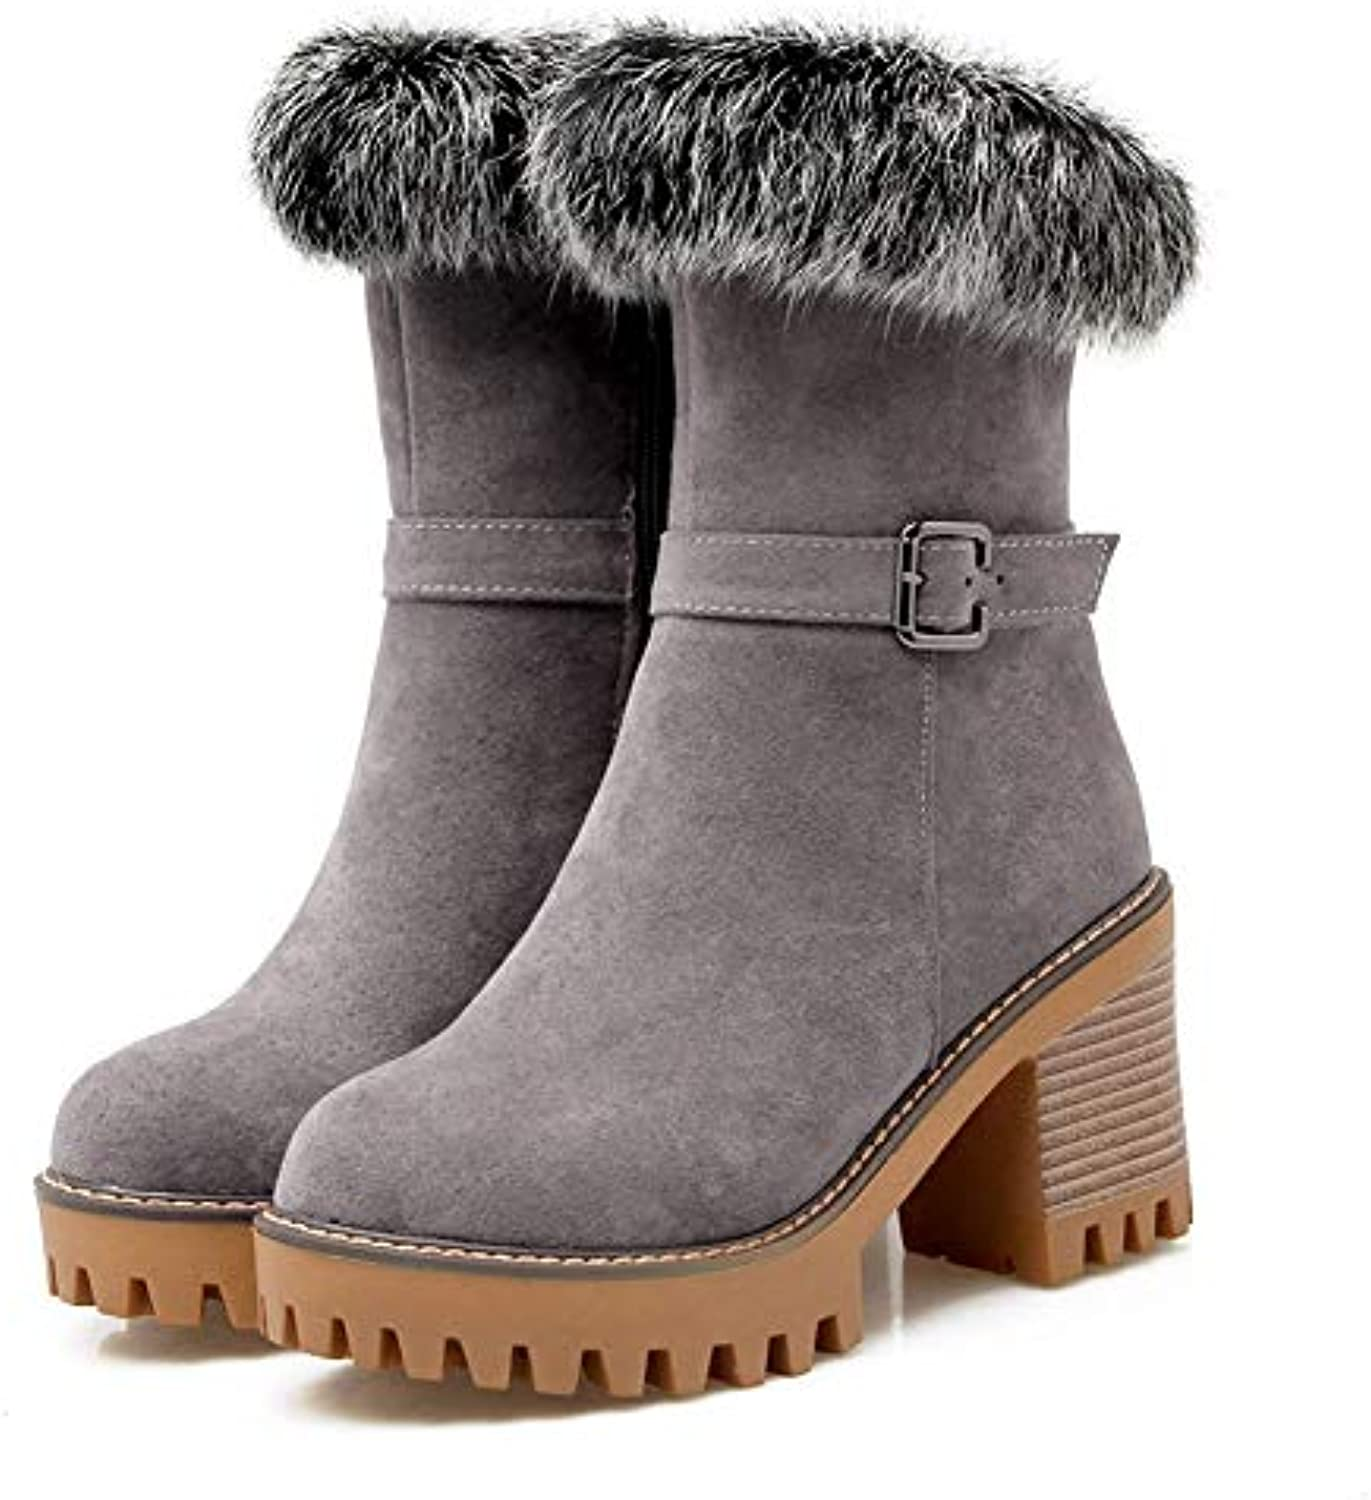 T-JULY Winter Warm Plush Women shoes High Heels Platform Fur Snow Boots